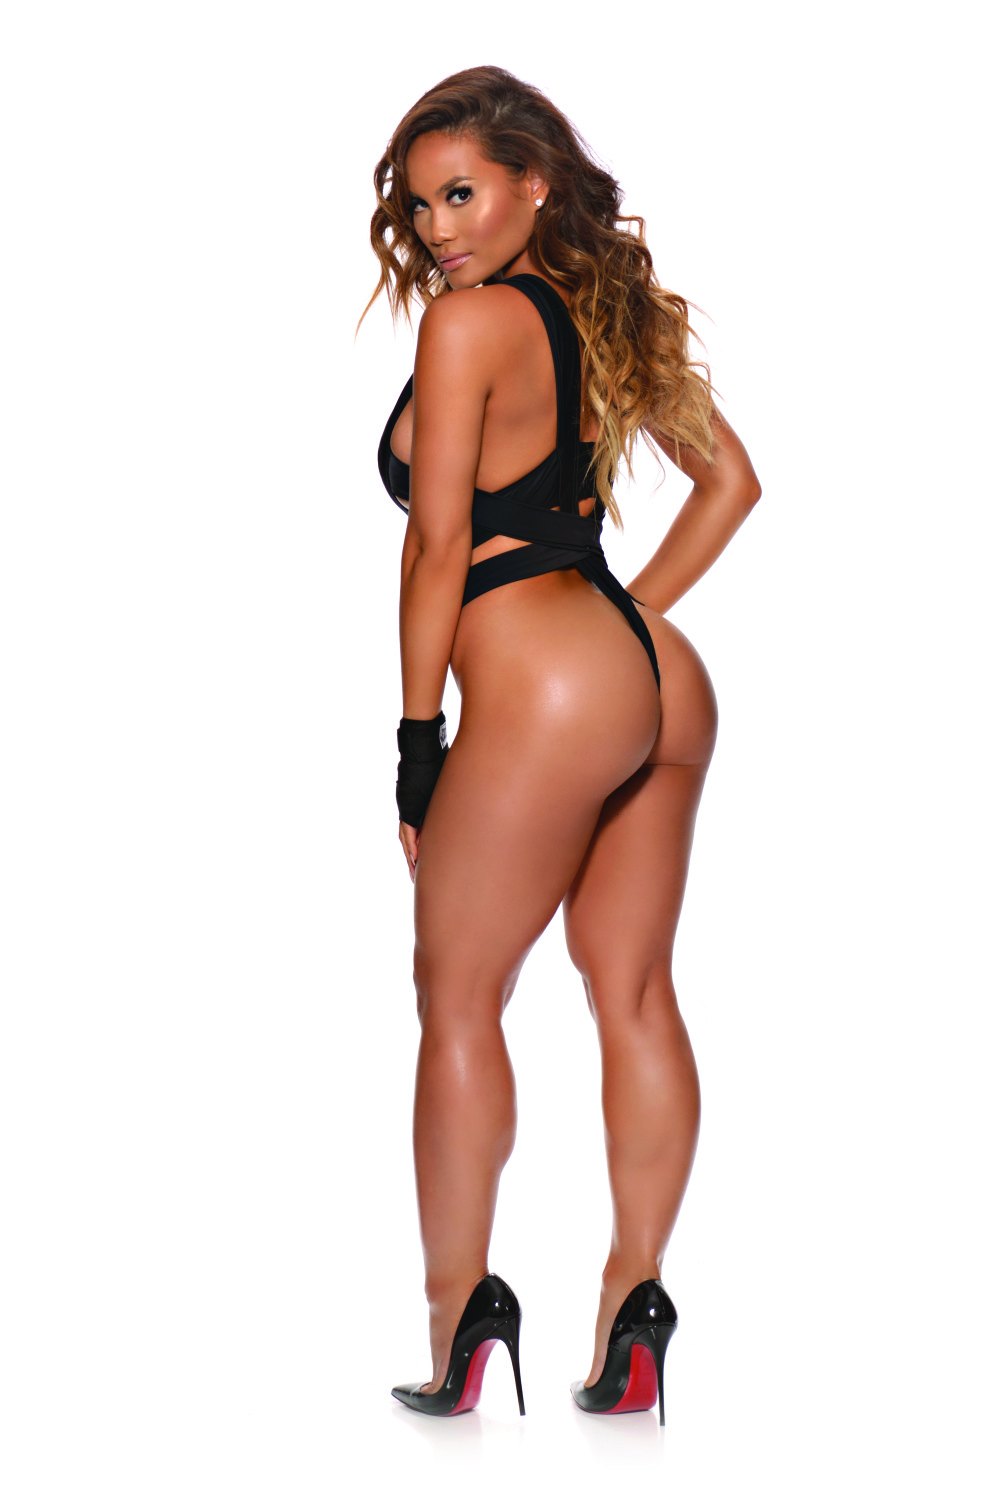 Daphne-Joy-leaked-nude-photos-www.ohfree.net-023 Filipina Puerto Rican actress and model Daphne Joy leaked nude photos